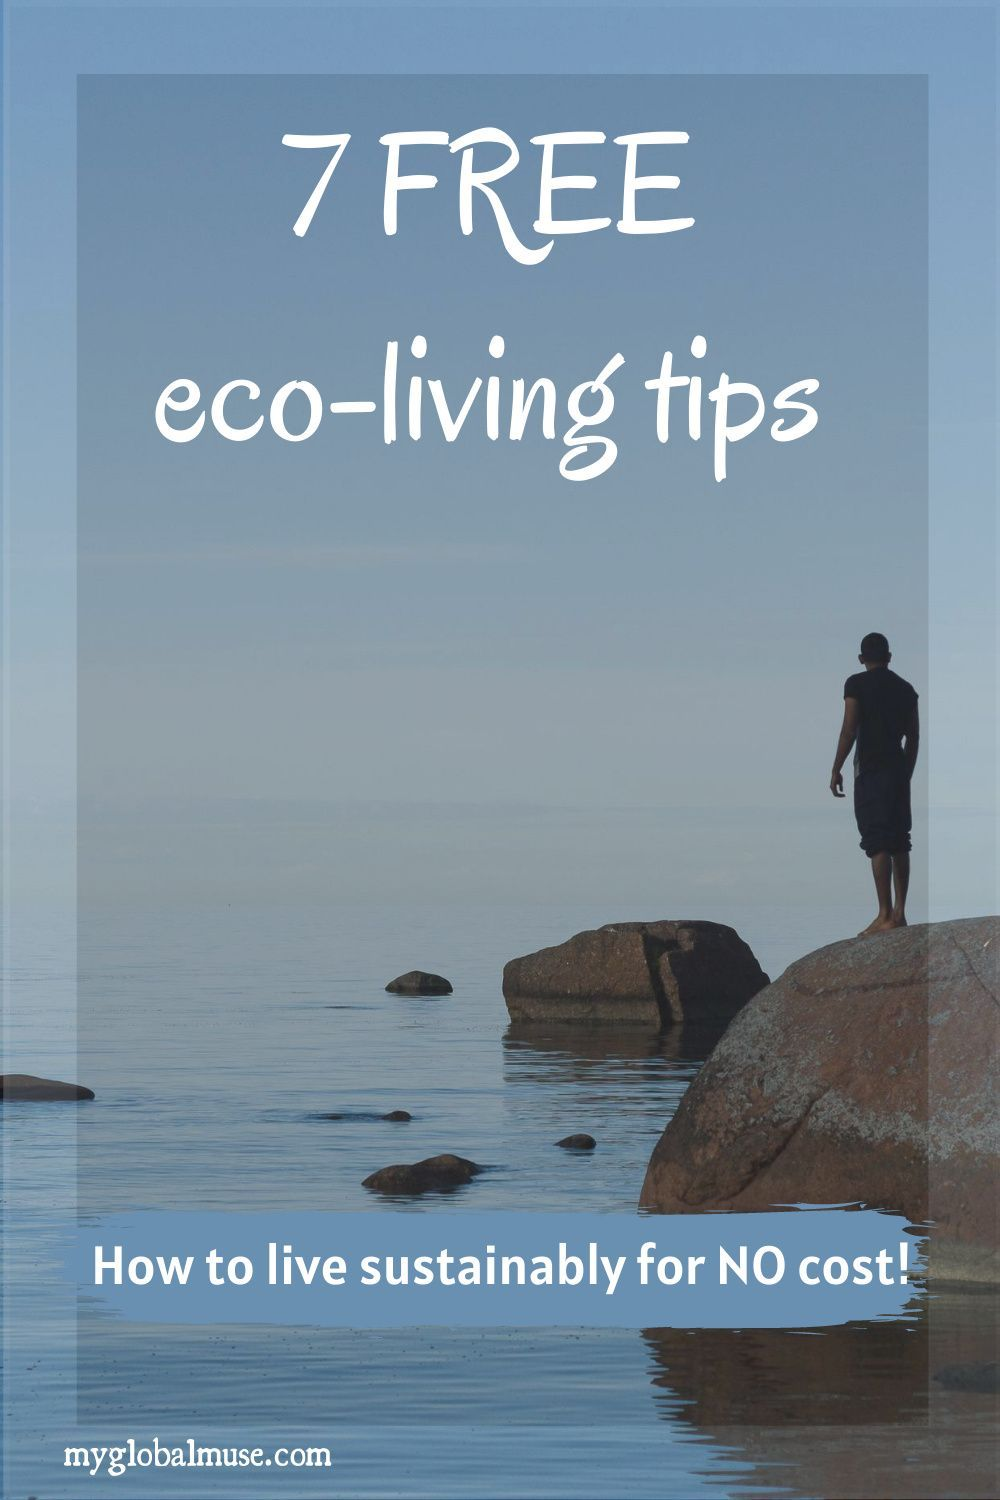 Wanting to become greener? Taking the quarantine a chance to become more eco-friendly. Then follow these 7 free and simple tips for eco-living. #ecoliving #sustainability #ecofriendlyliving